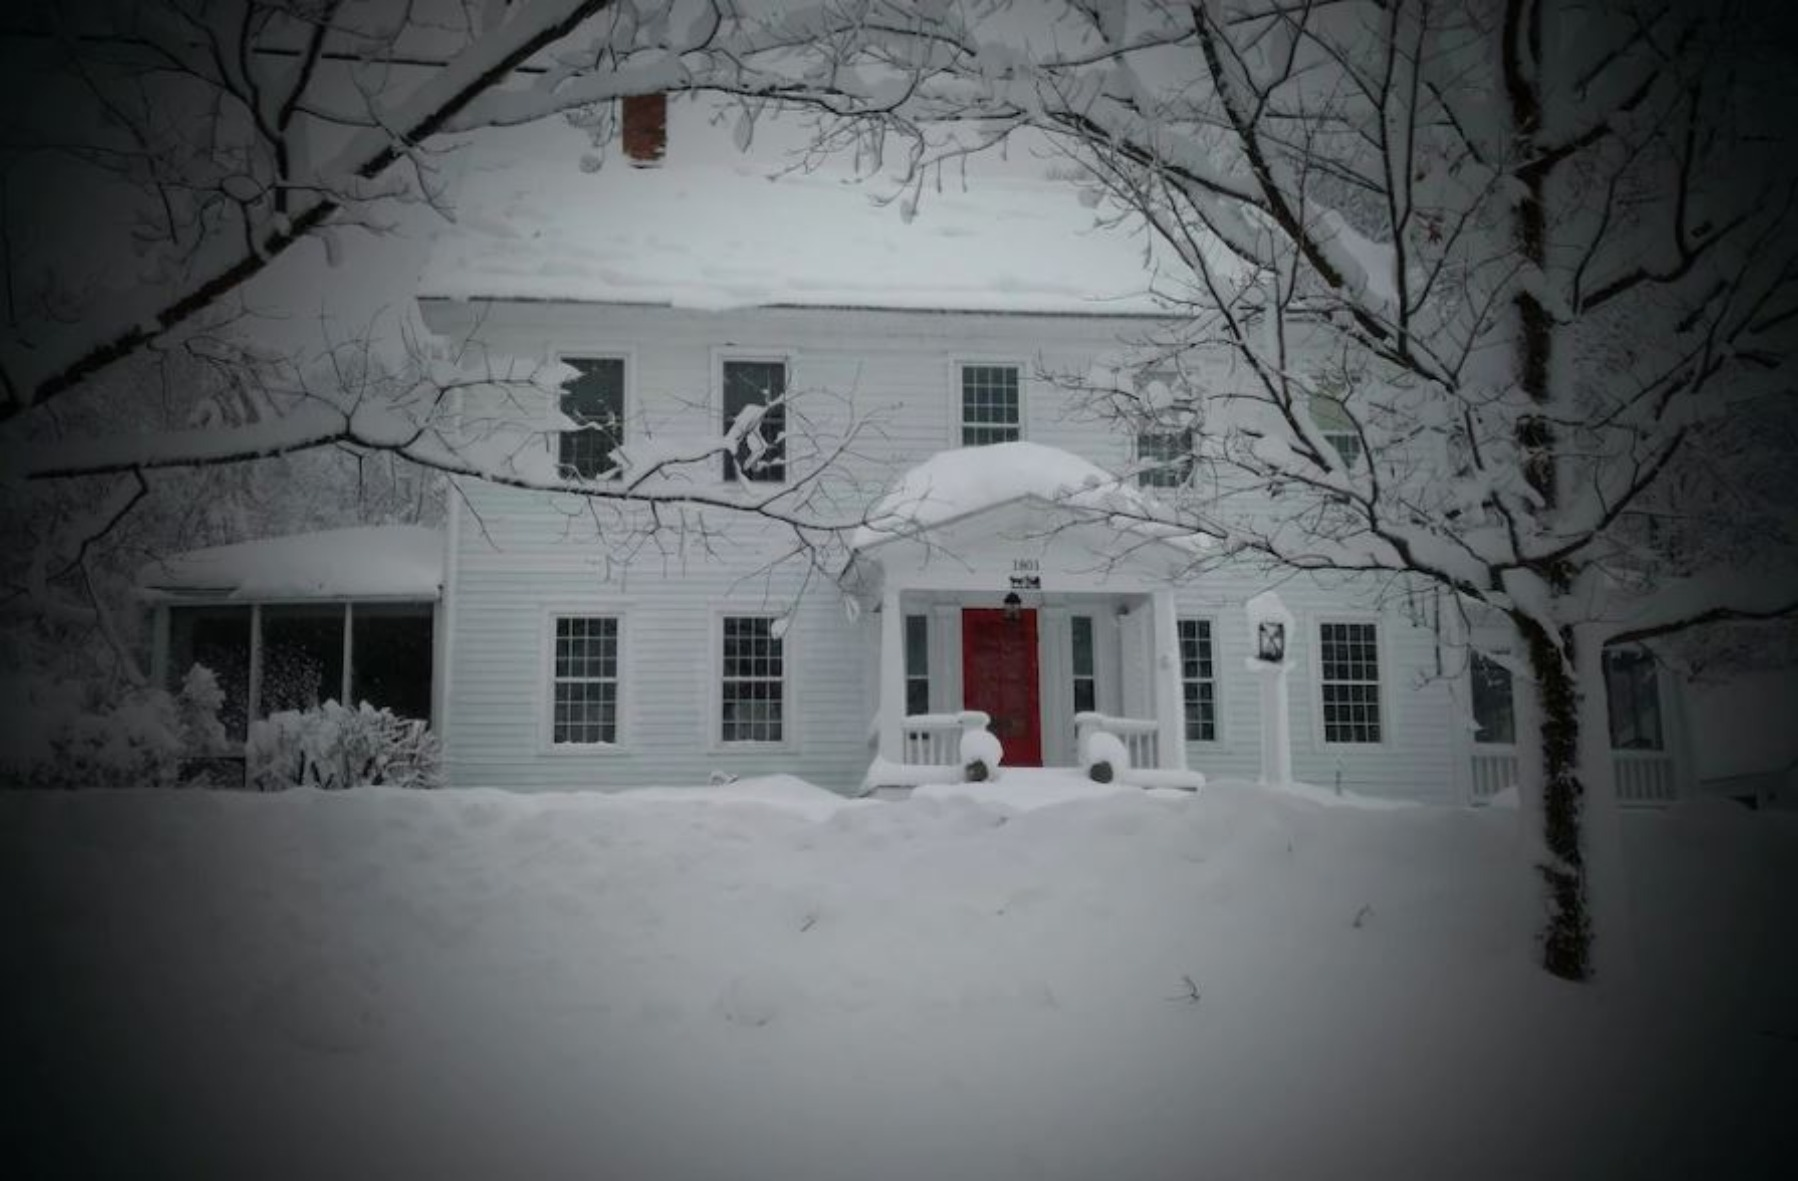 A house covered in snow at Buckmaster Inn Bed and Breakfast.